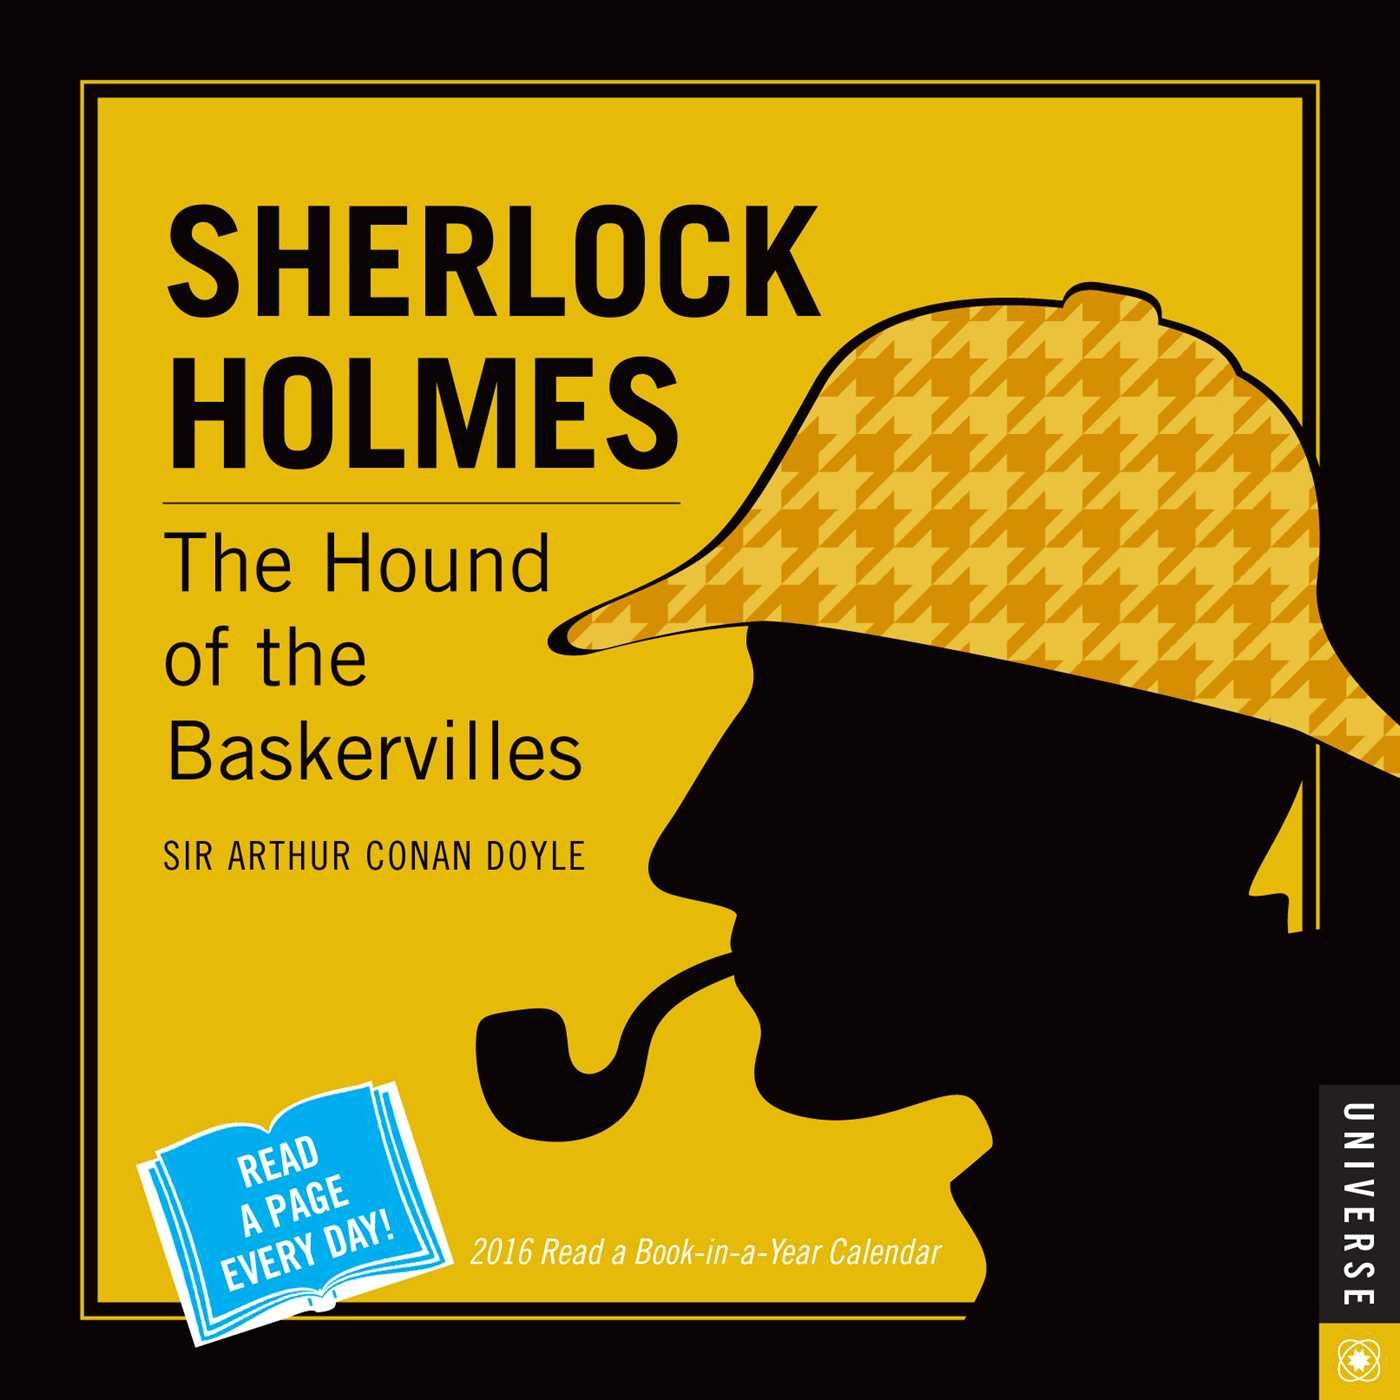 sherlock holmes a book in a year day to day calendar  sherlock holmes 2016 a book in a year day to day calendar the hound of the baskervilles arthur conan doyle 0676728029588 amazon com books